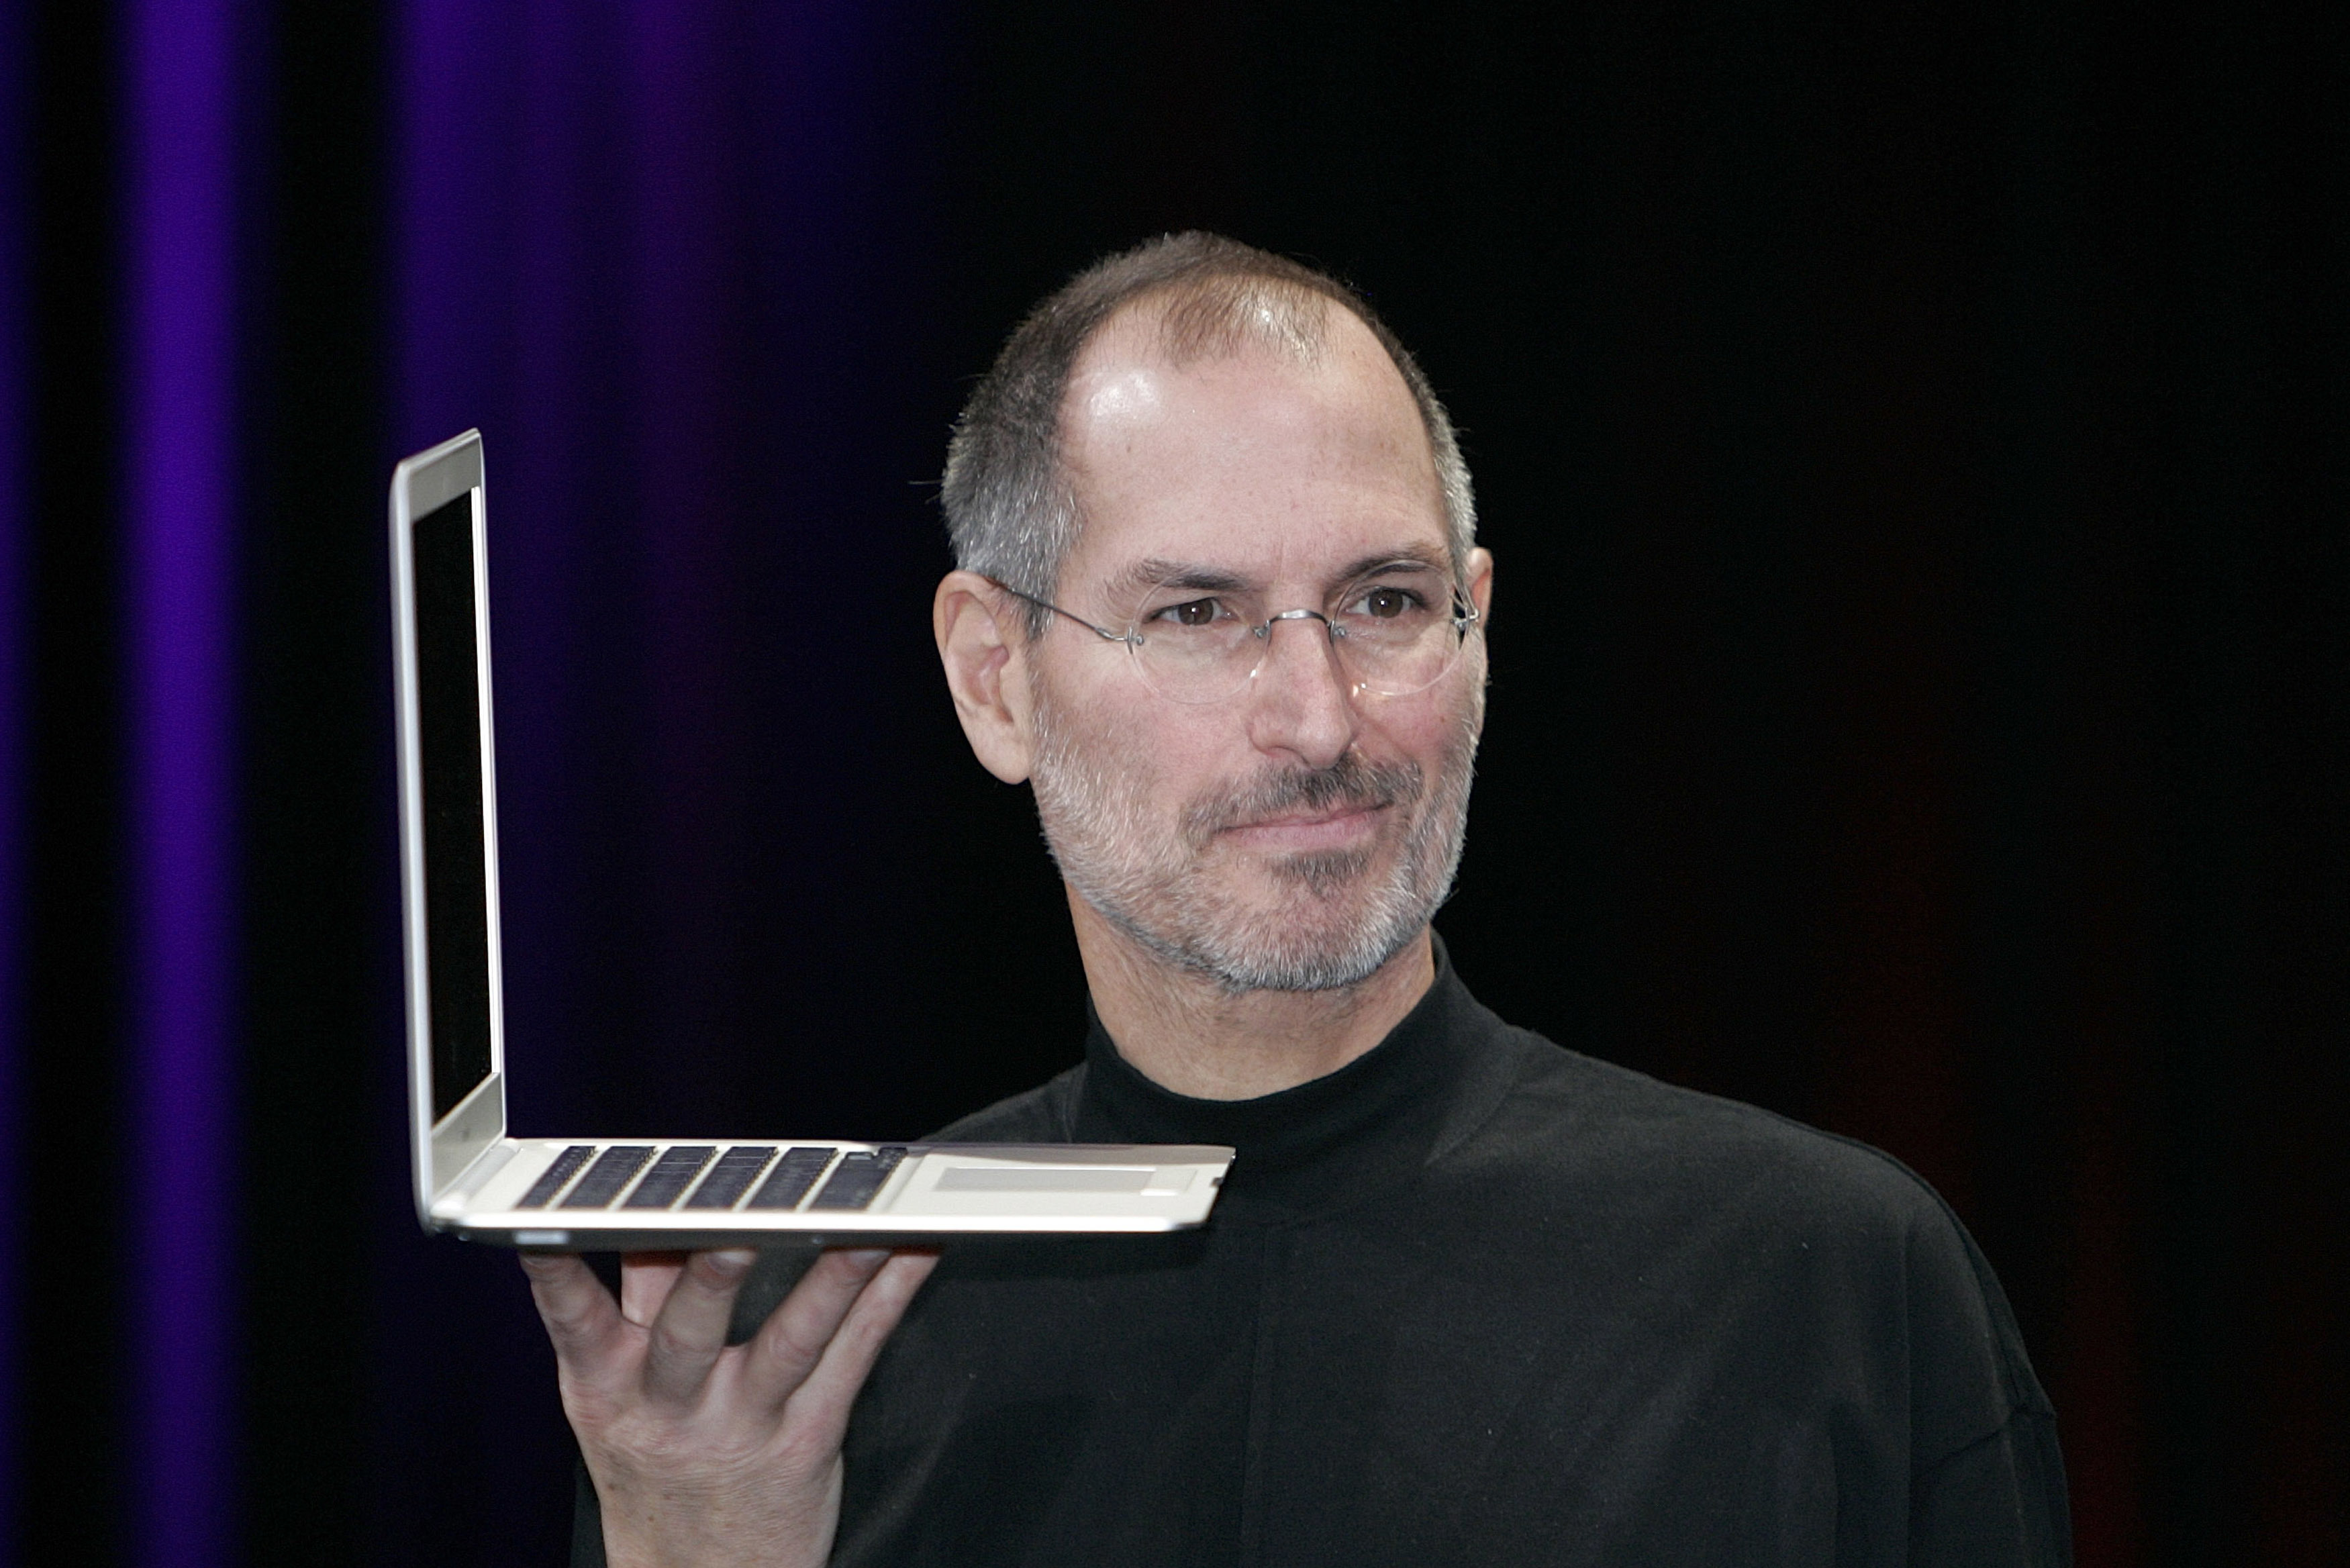 The MacBook Air featured a giant multi-touch trackpad.